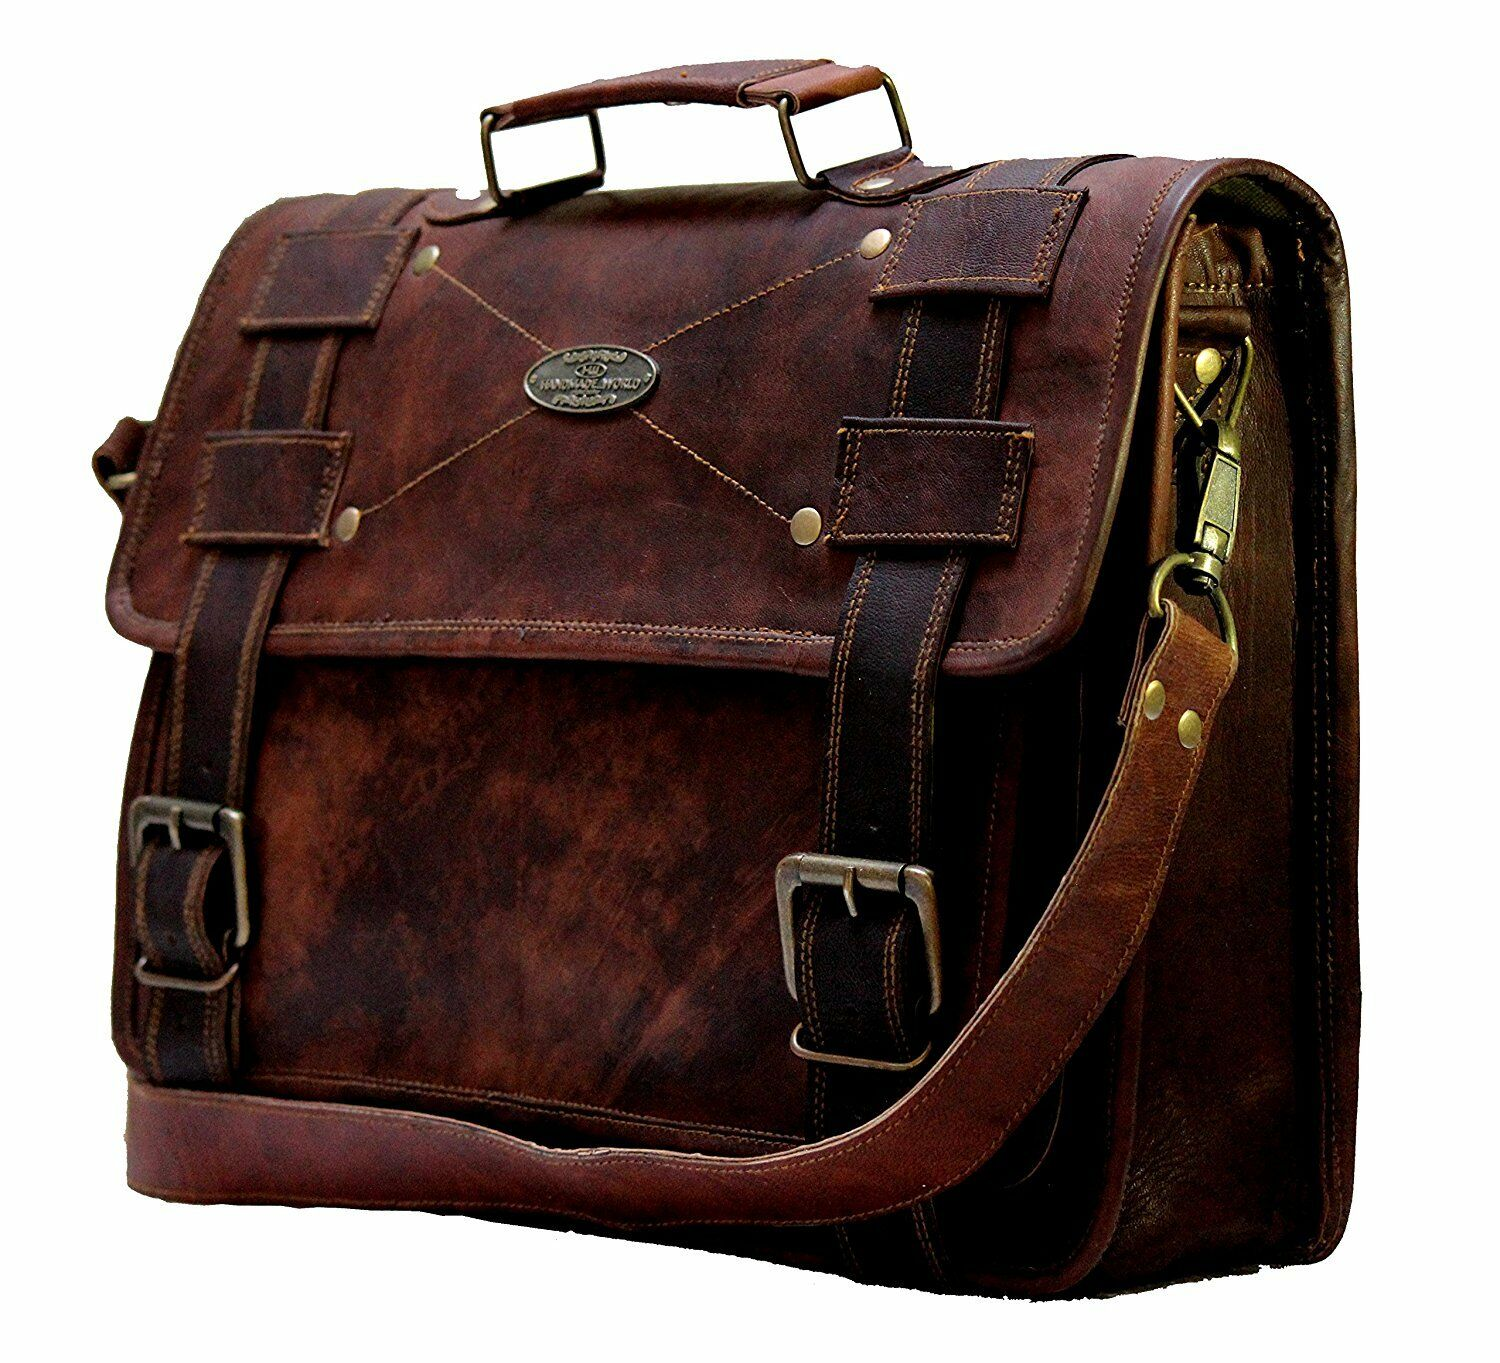 155e2868a891 Details about 16 Inch Laptop Messenger Briefcase Large Satchel Business  Leather Computer Bag